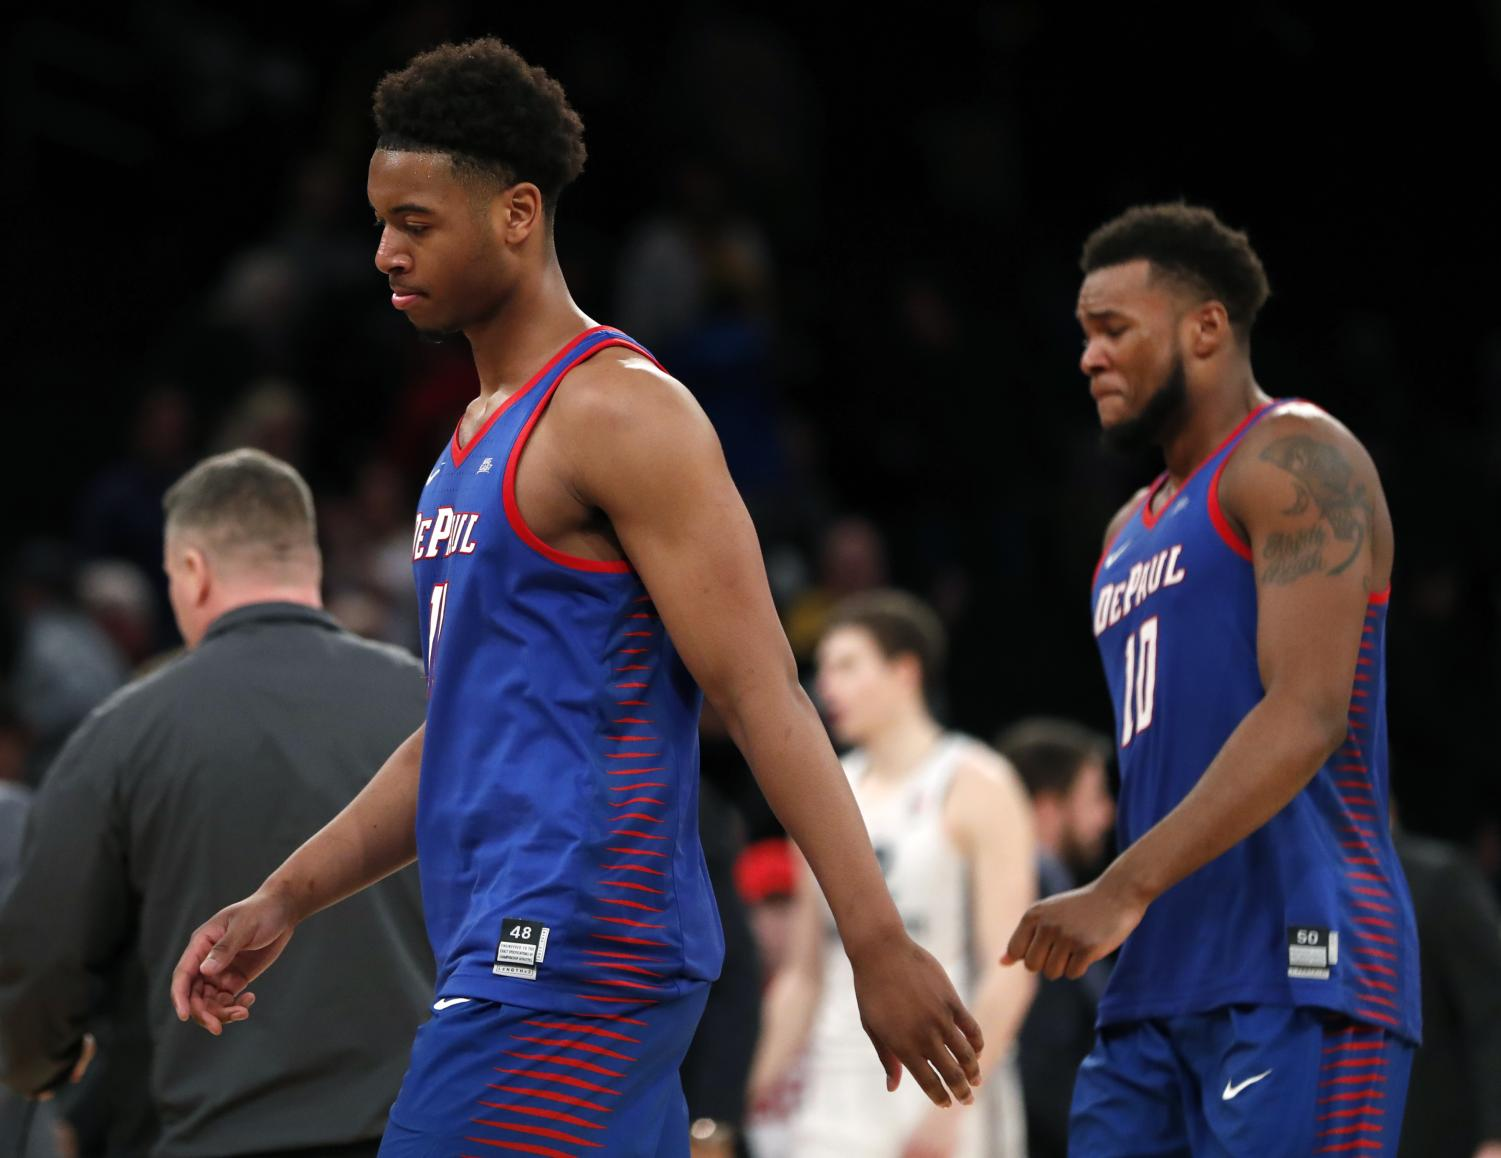 Eli Cain and Tre'Darius McCallum walking off the court at Madison Square Garden after Wednesday's season ending loss.  (AP Photo/Kathy Willens)